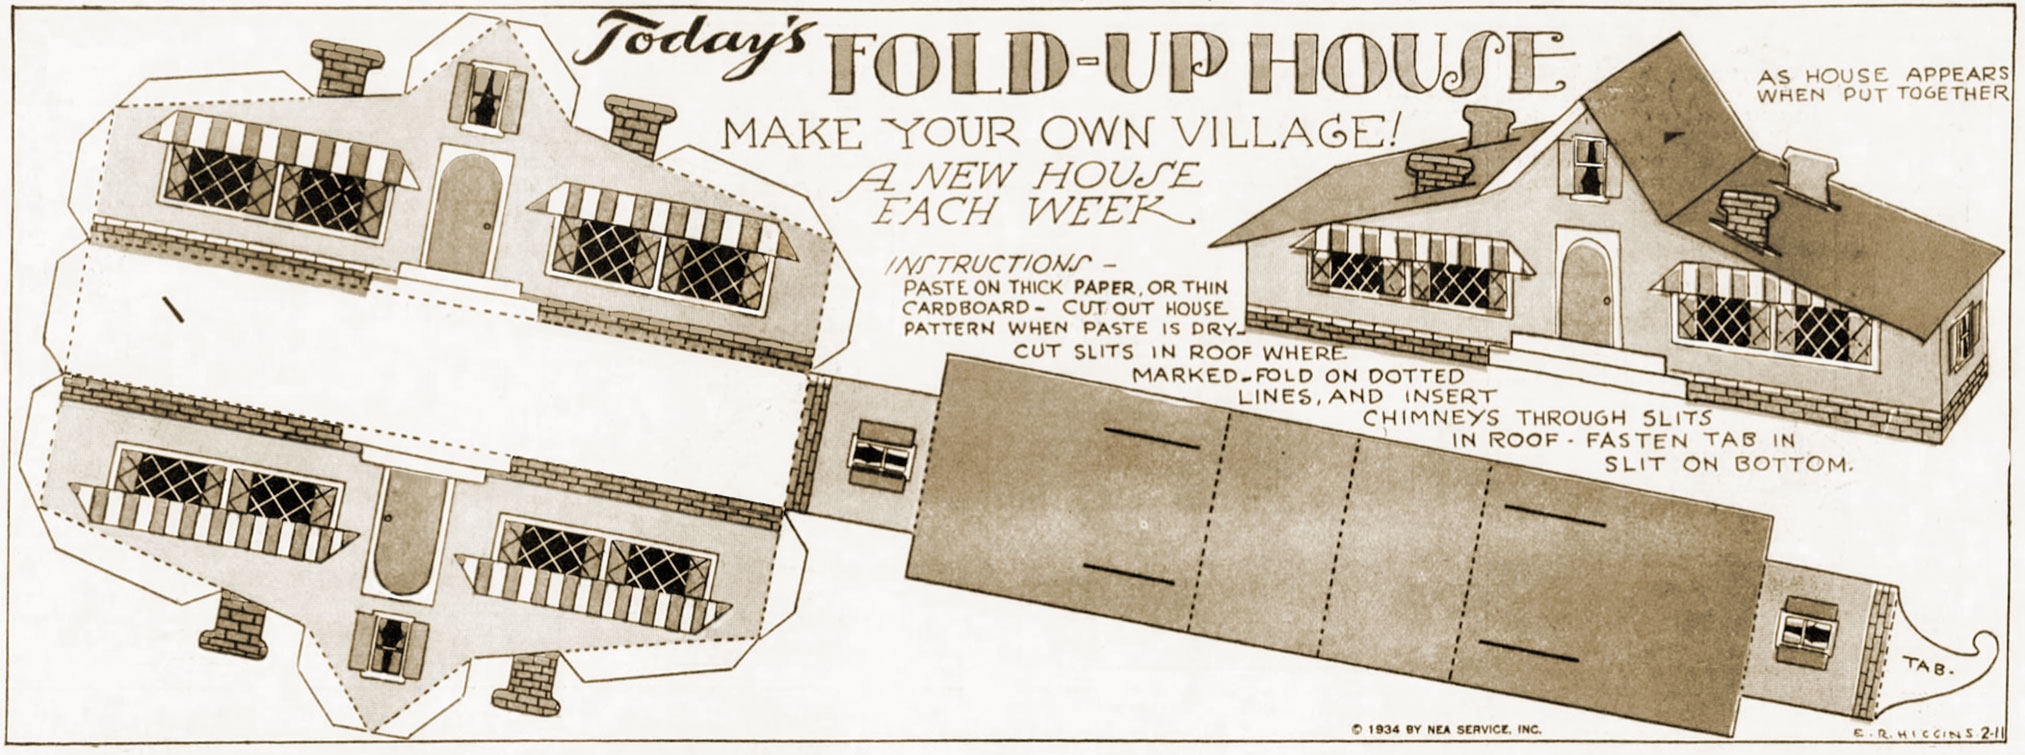 Fold Up Houses Make Your Own Village 1934 Q Is For